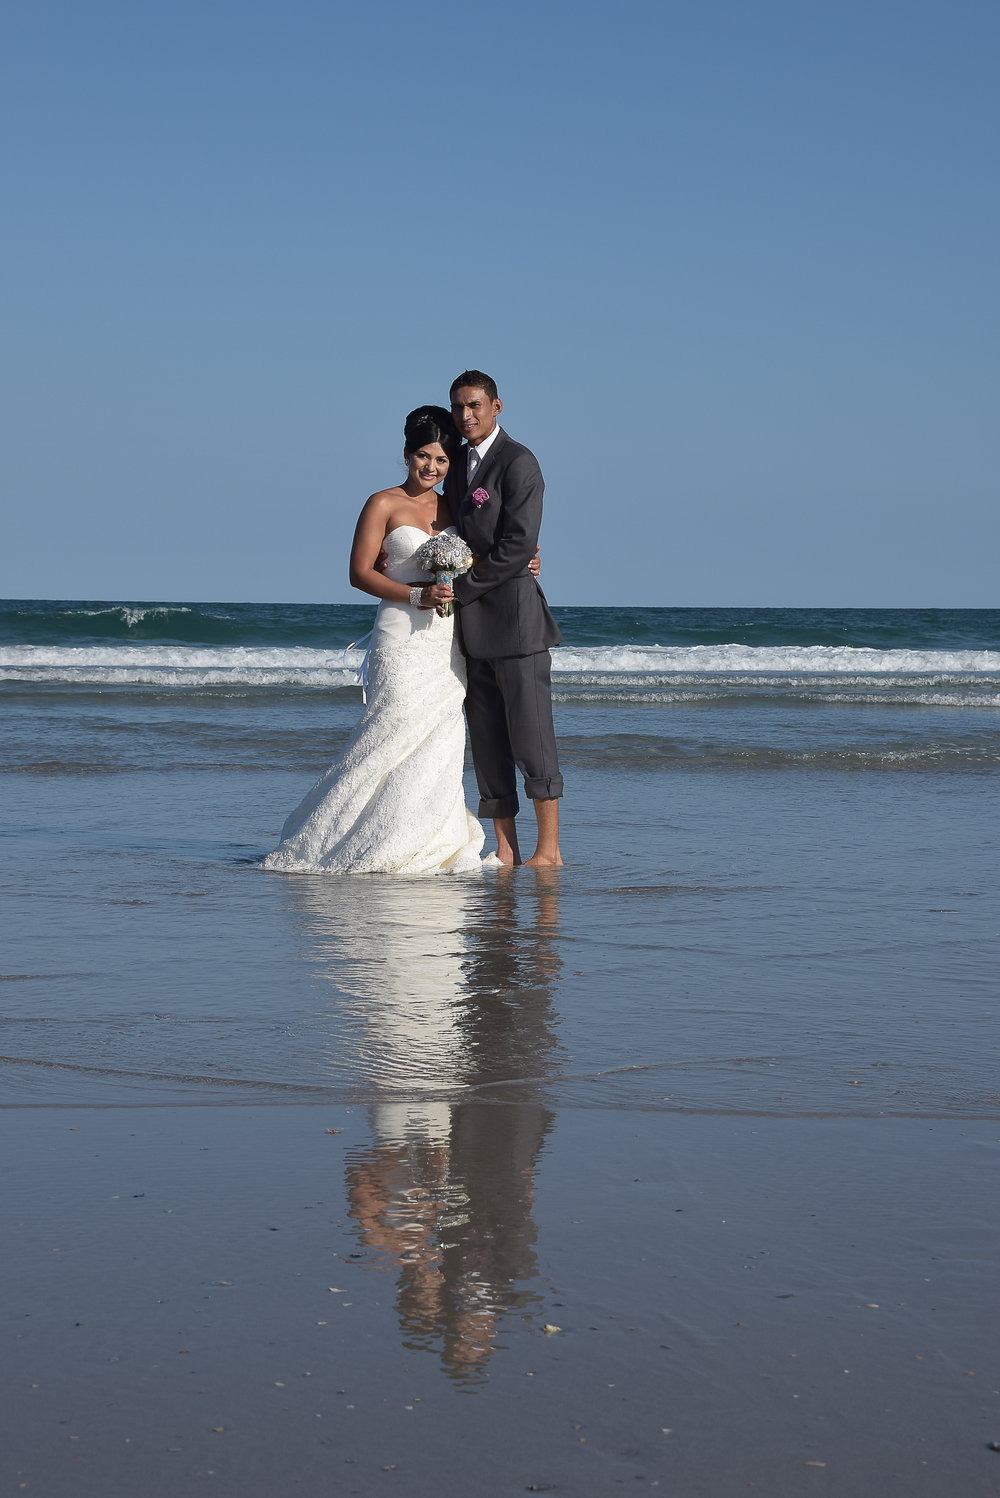 Bride and Groom at Beach.